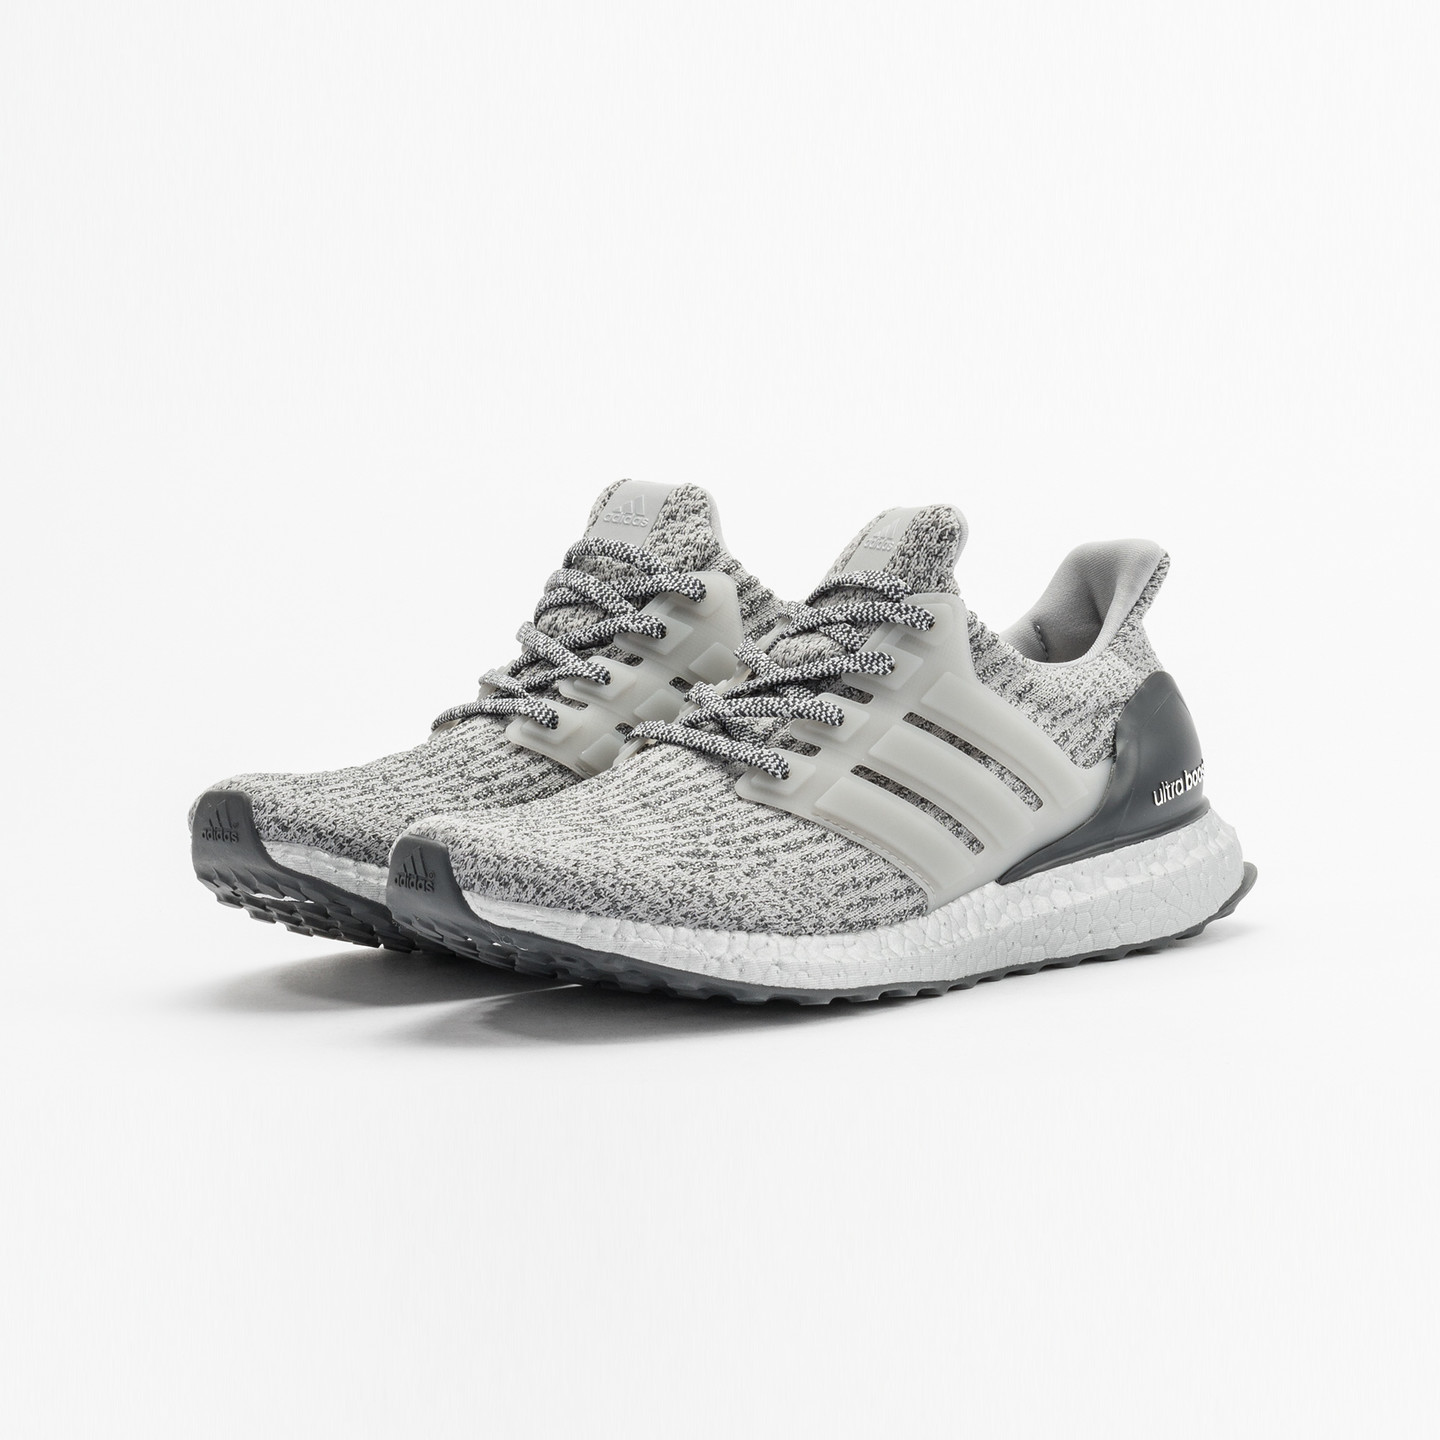 Adidas Ultra Boost 3.0 'Super Bowl' Silver Grey BA8143-44.66